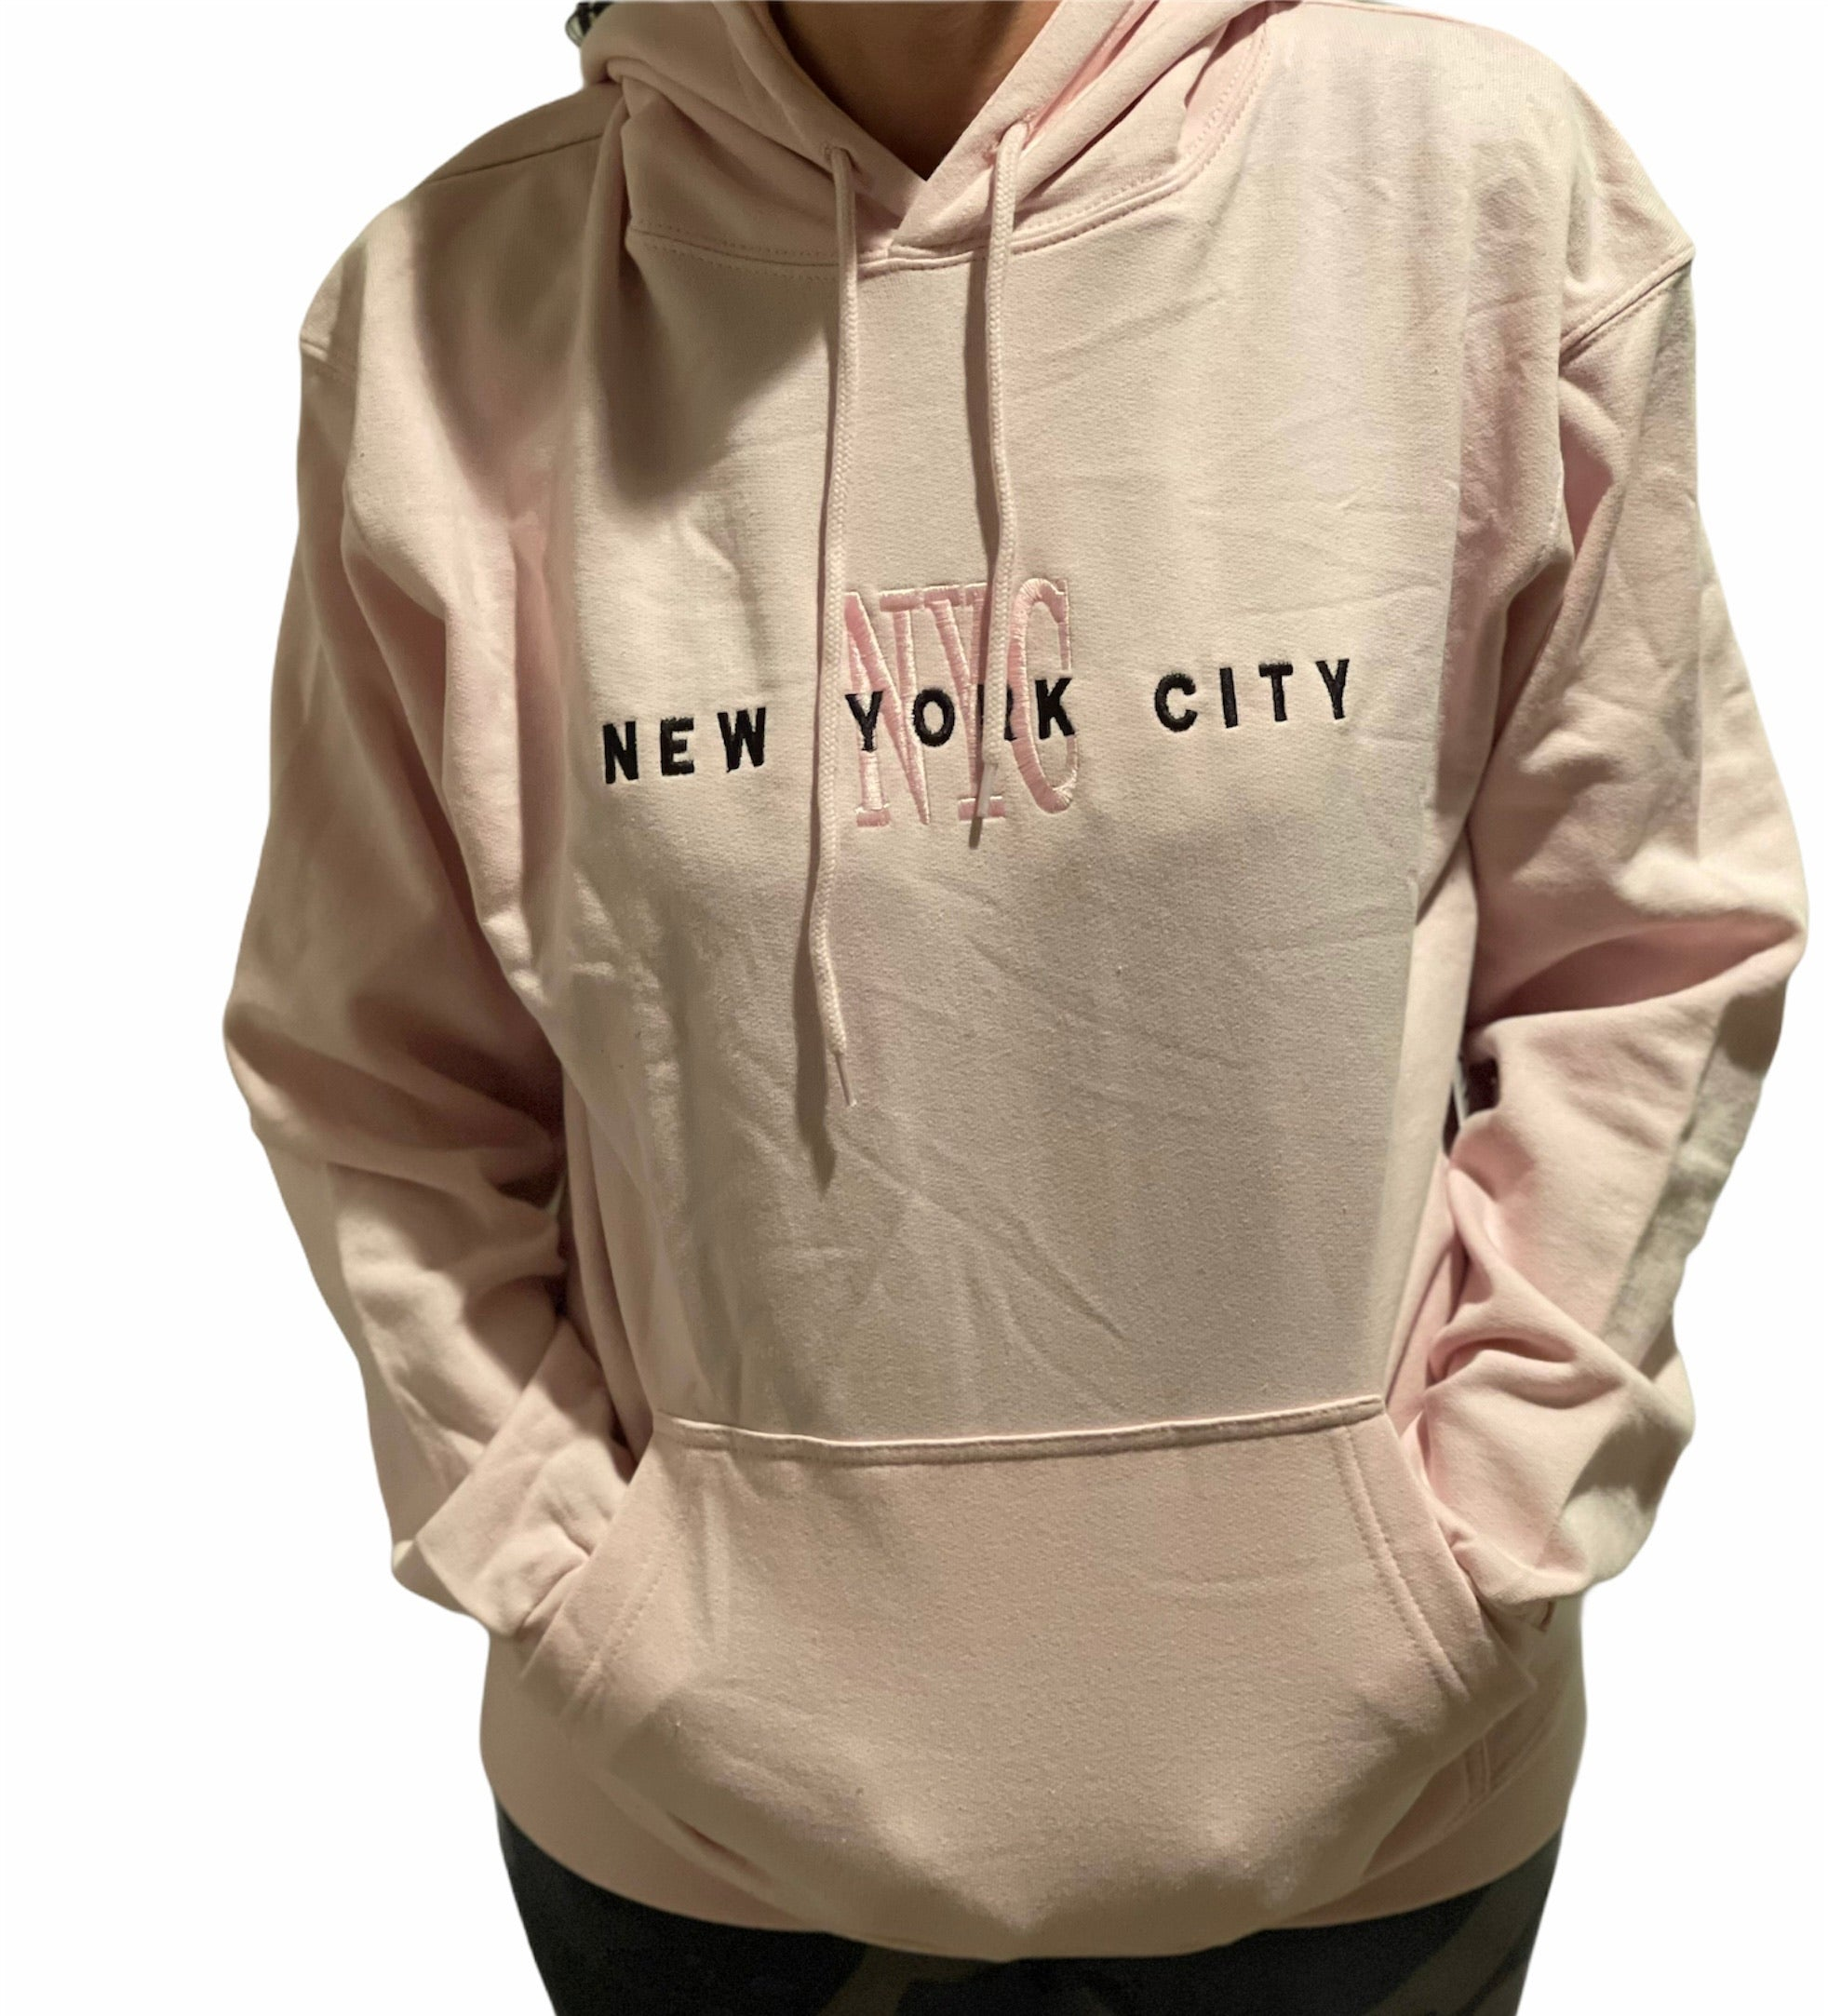 New York Comfortable Pink Embroidered Sweatshirt